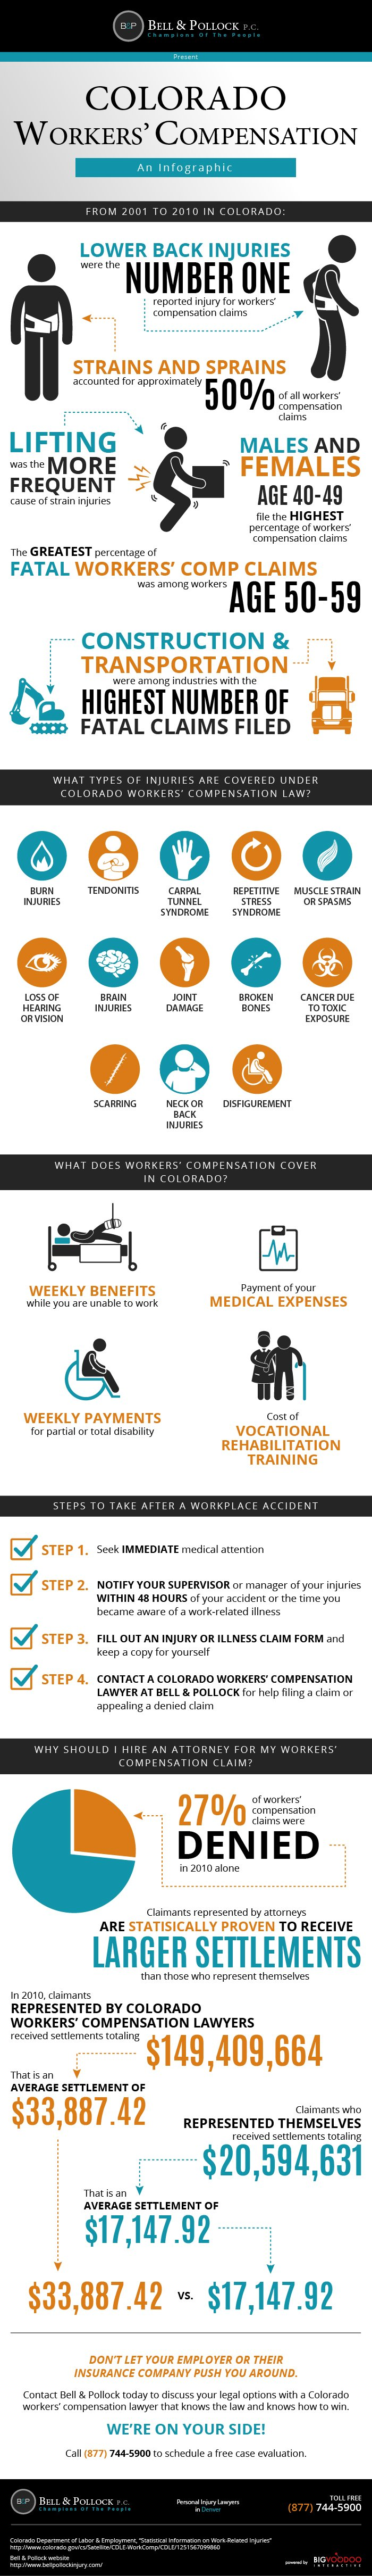 An overview of CO workers' compensation injuries & claims from 2001 to 2010